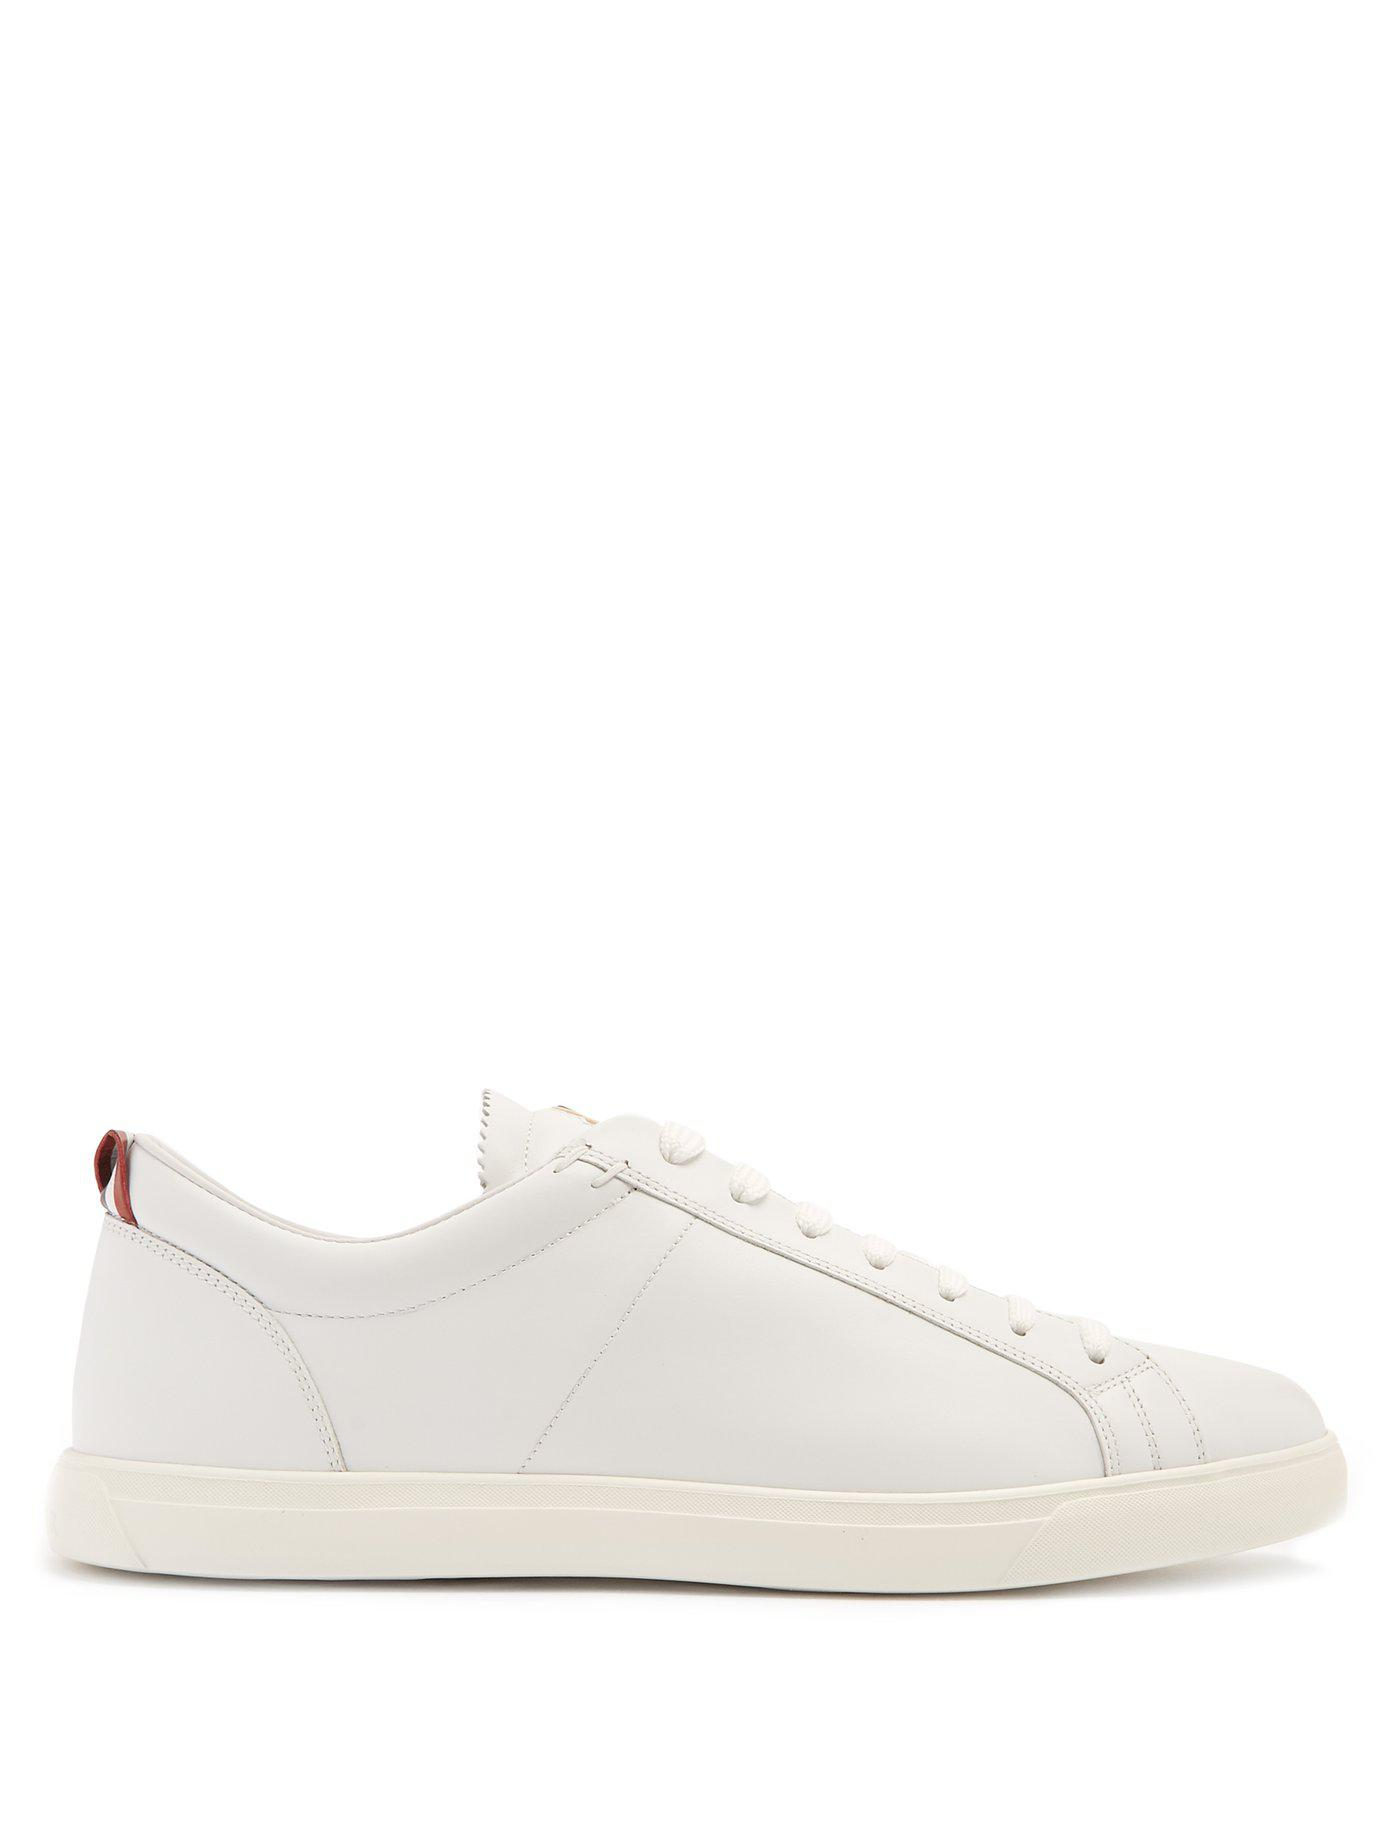 866a0c217 Lyst - Moncler La Monaco Low Top Leather Trainers in White for Men ...